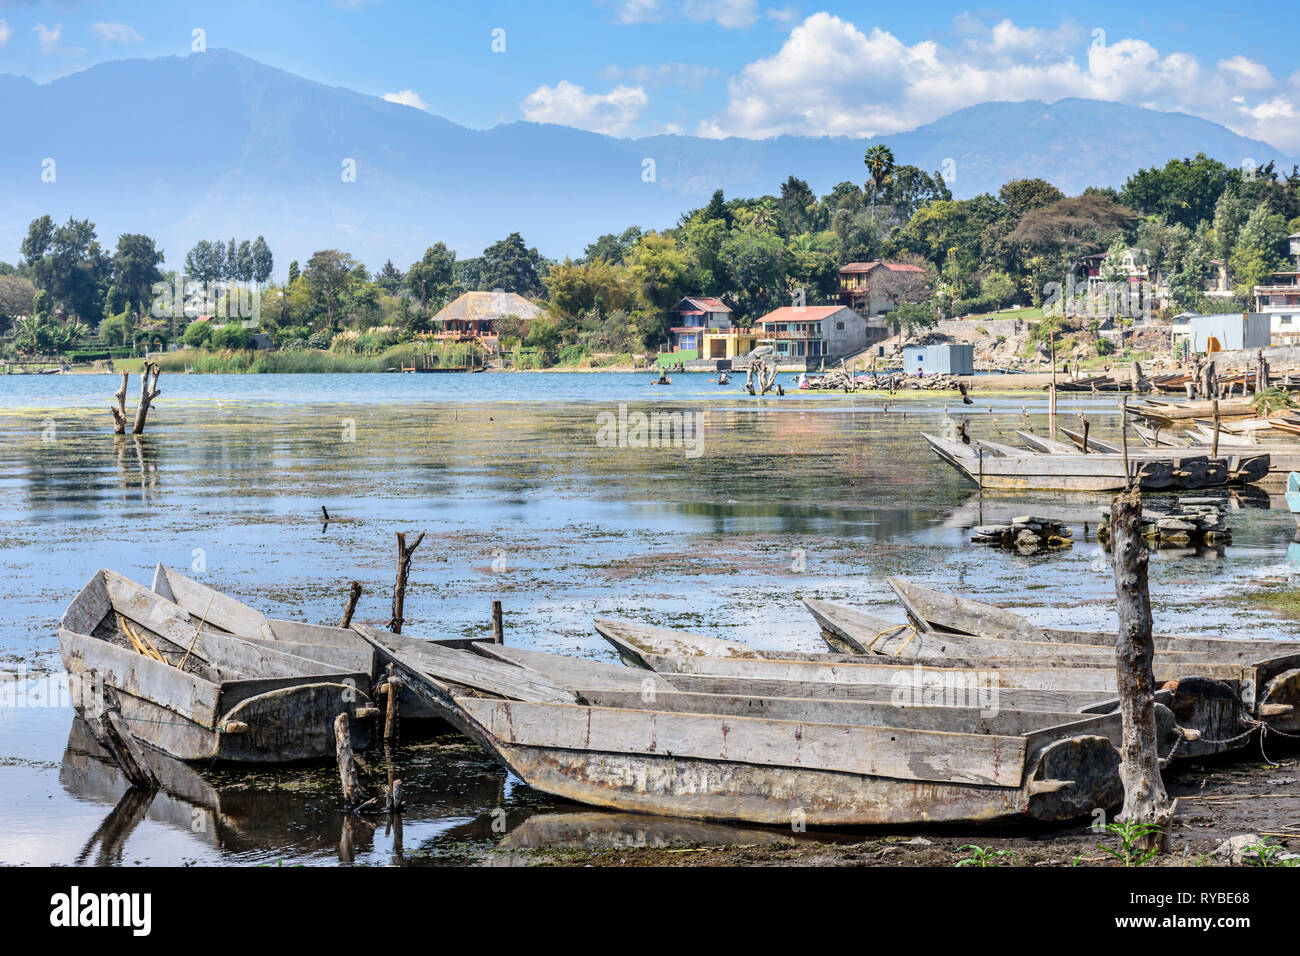 Santiago Atitlan, Lake Atitlan, Guatemala - March 8, 2019: Rows of lakeside traditional canoes by lake in largest lakeside town - Stock Image